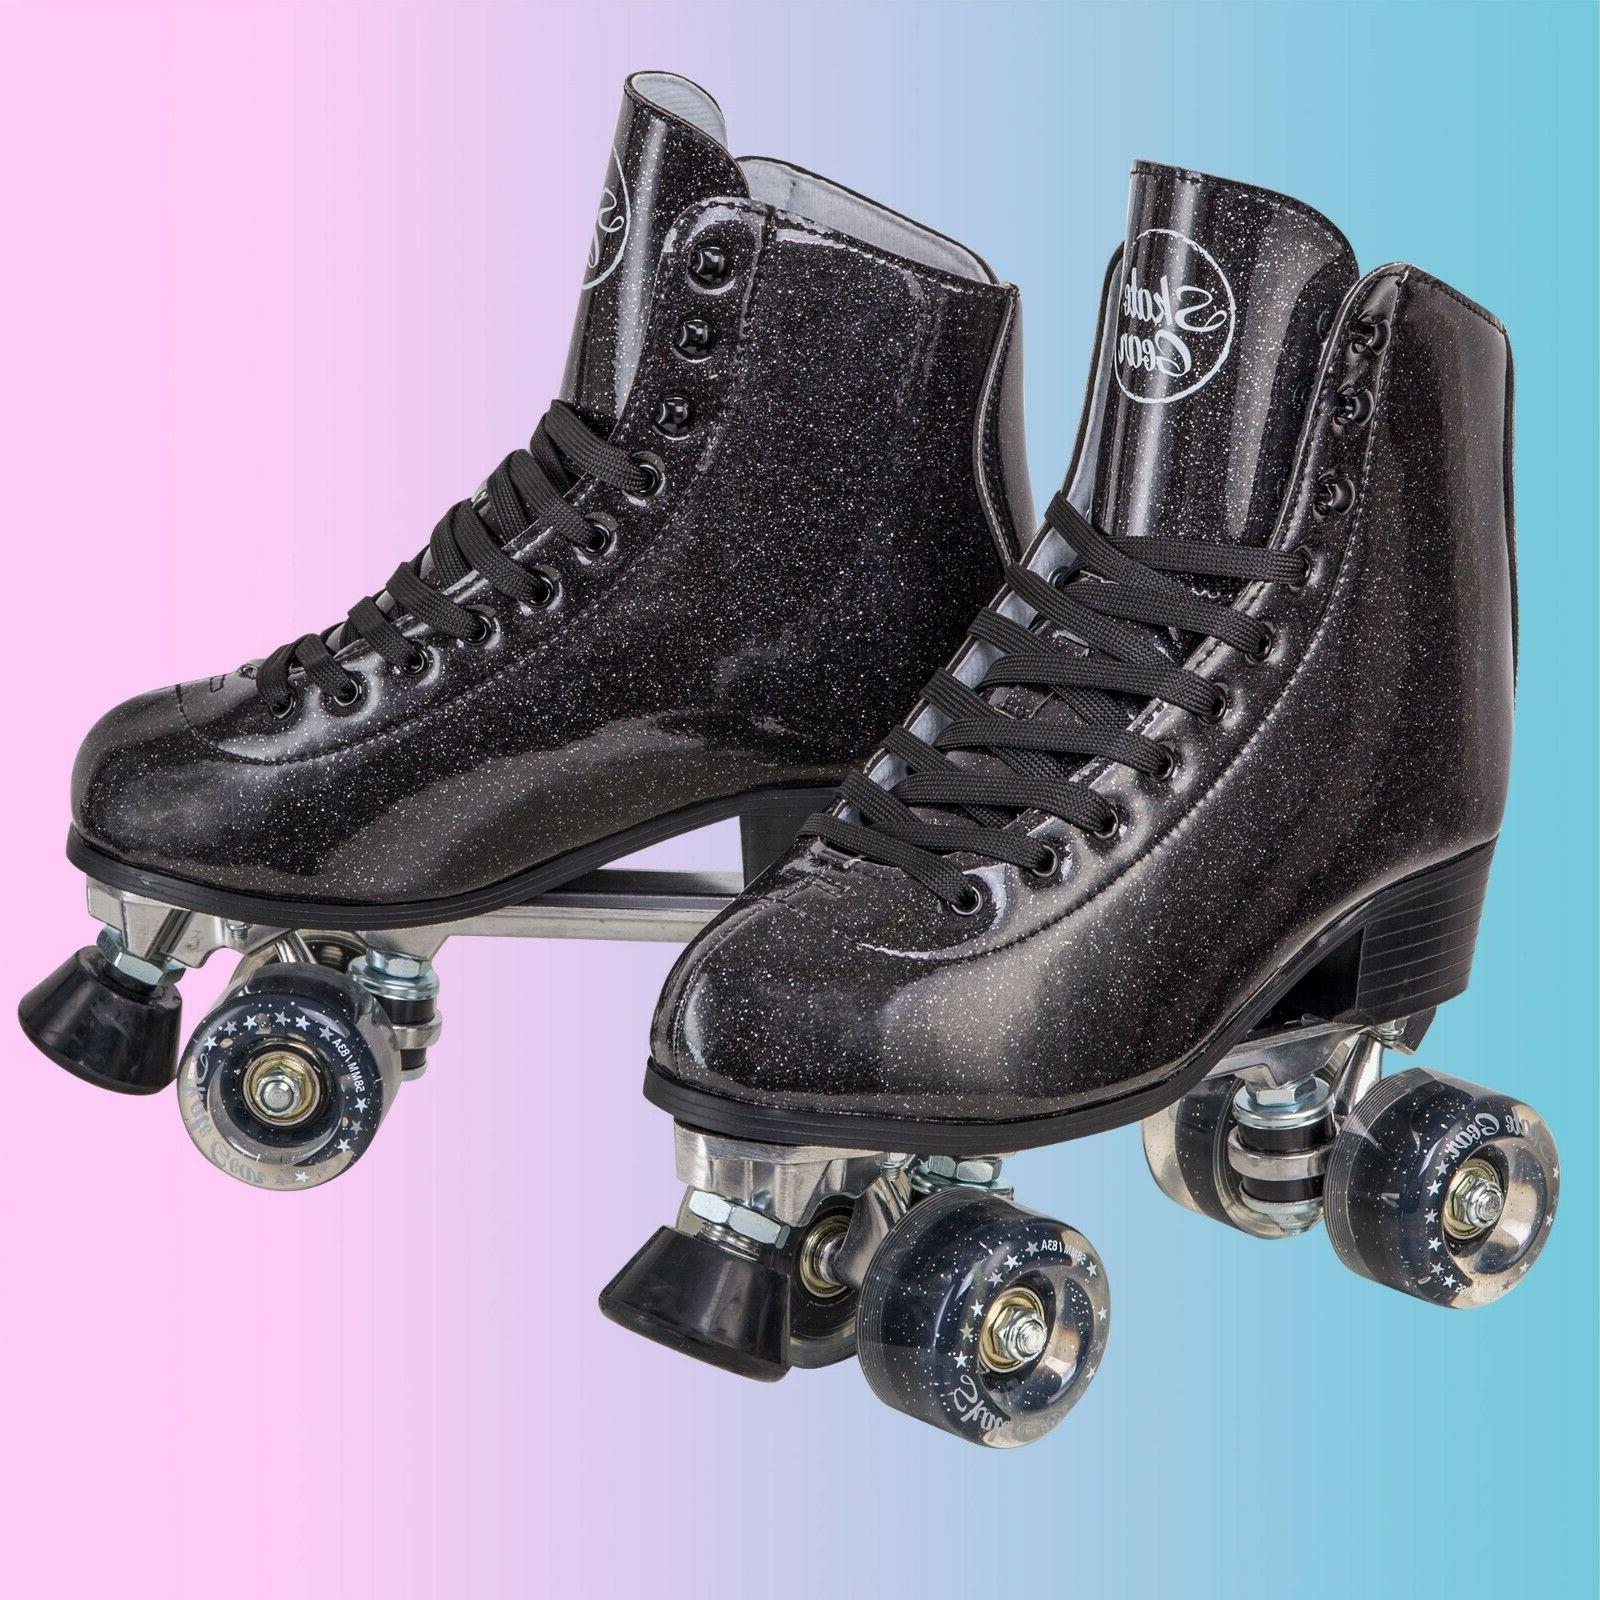 sparkly roller skates for indoor and outdoor